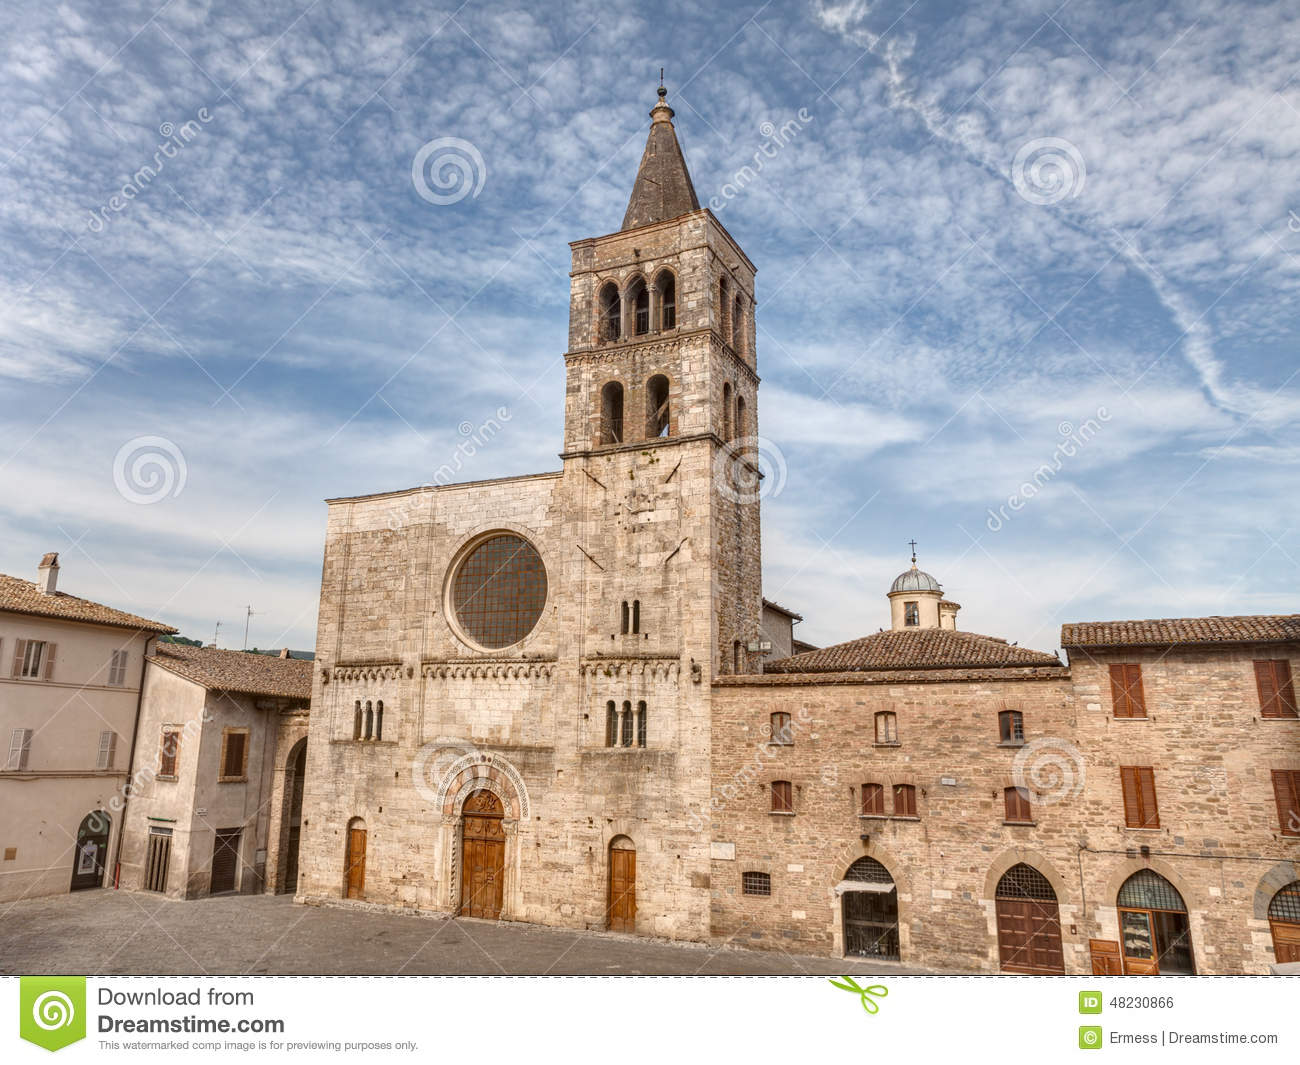 Church Of S. Michele Arcangelo In Bevagna, Italy Stock Photo.